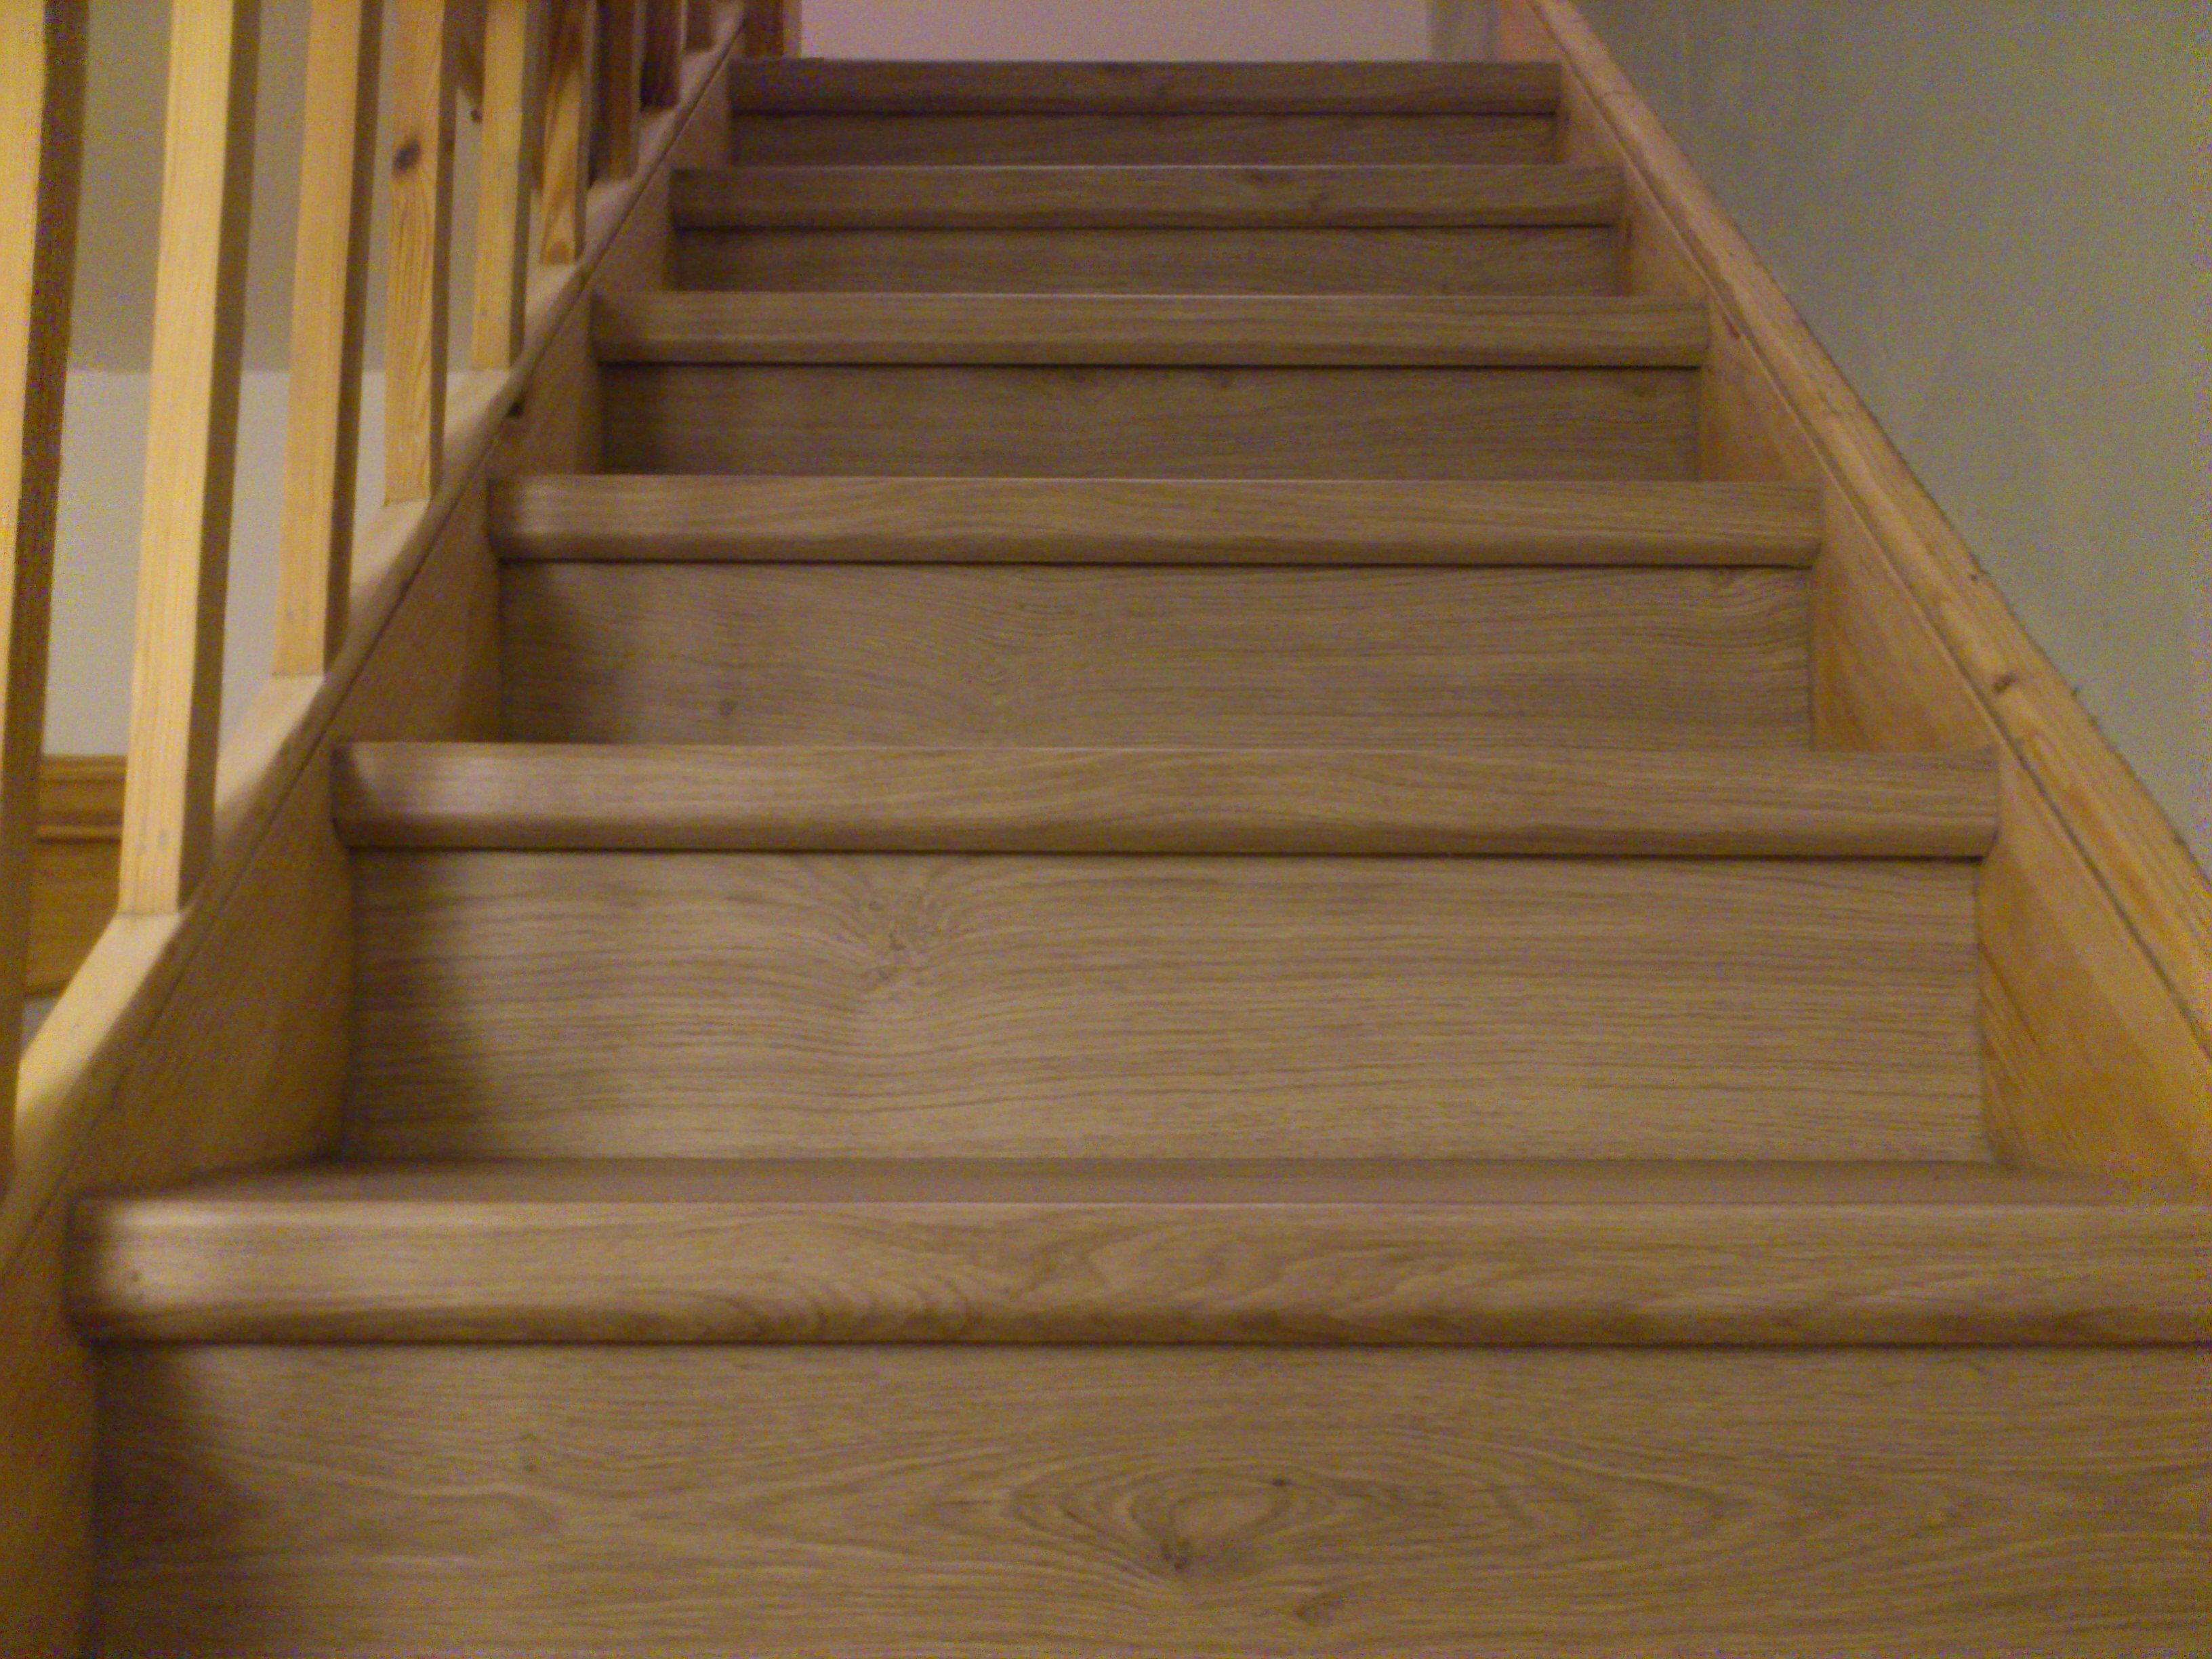 69 best images about Laminate Flooring on Pinterest Wide plank